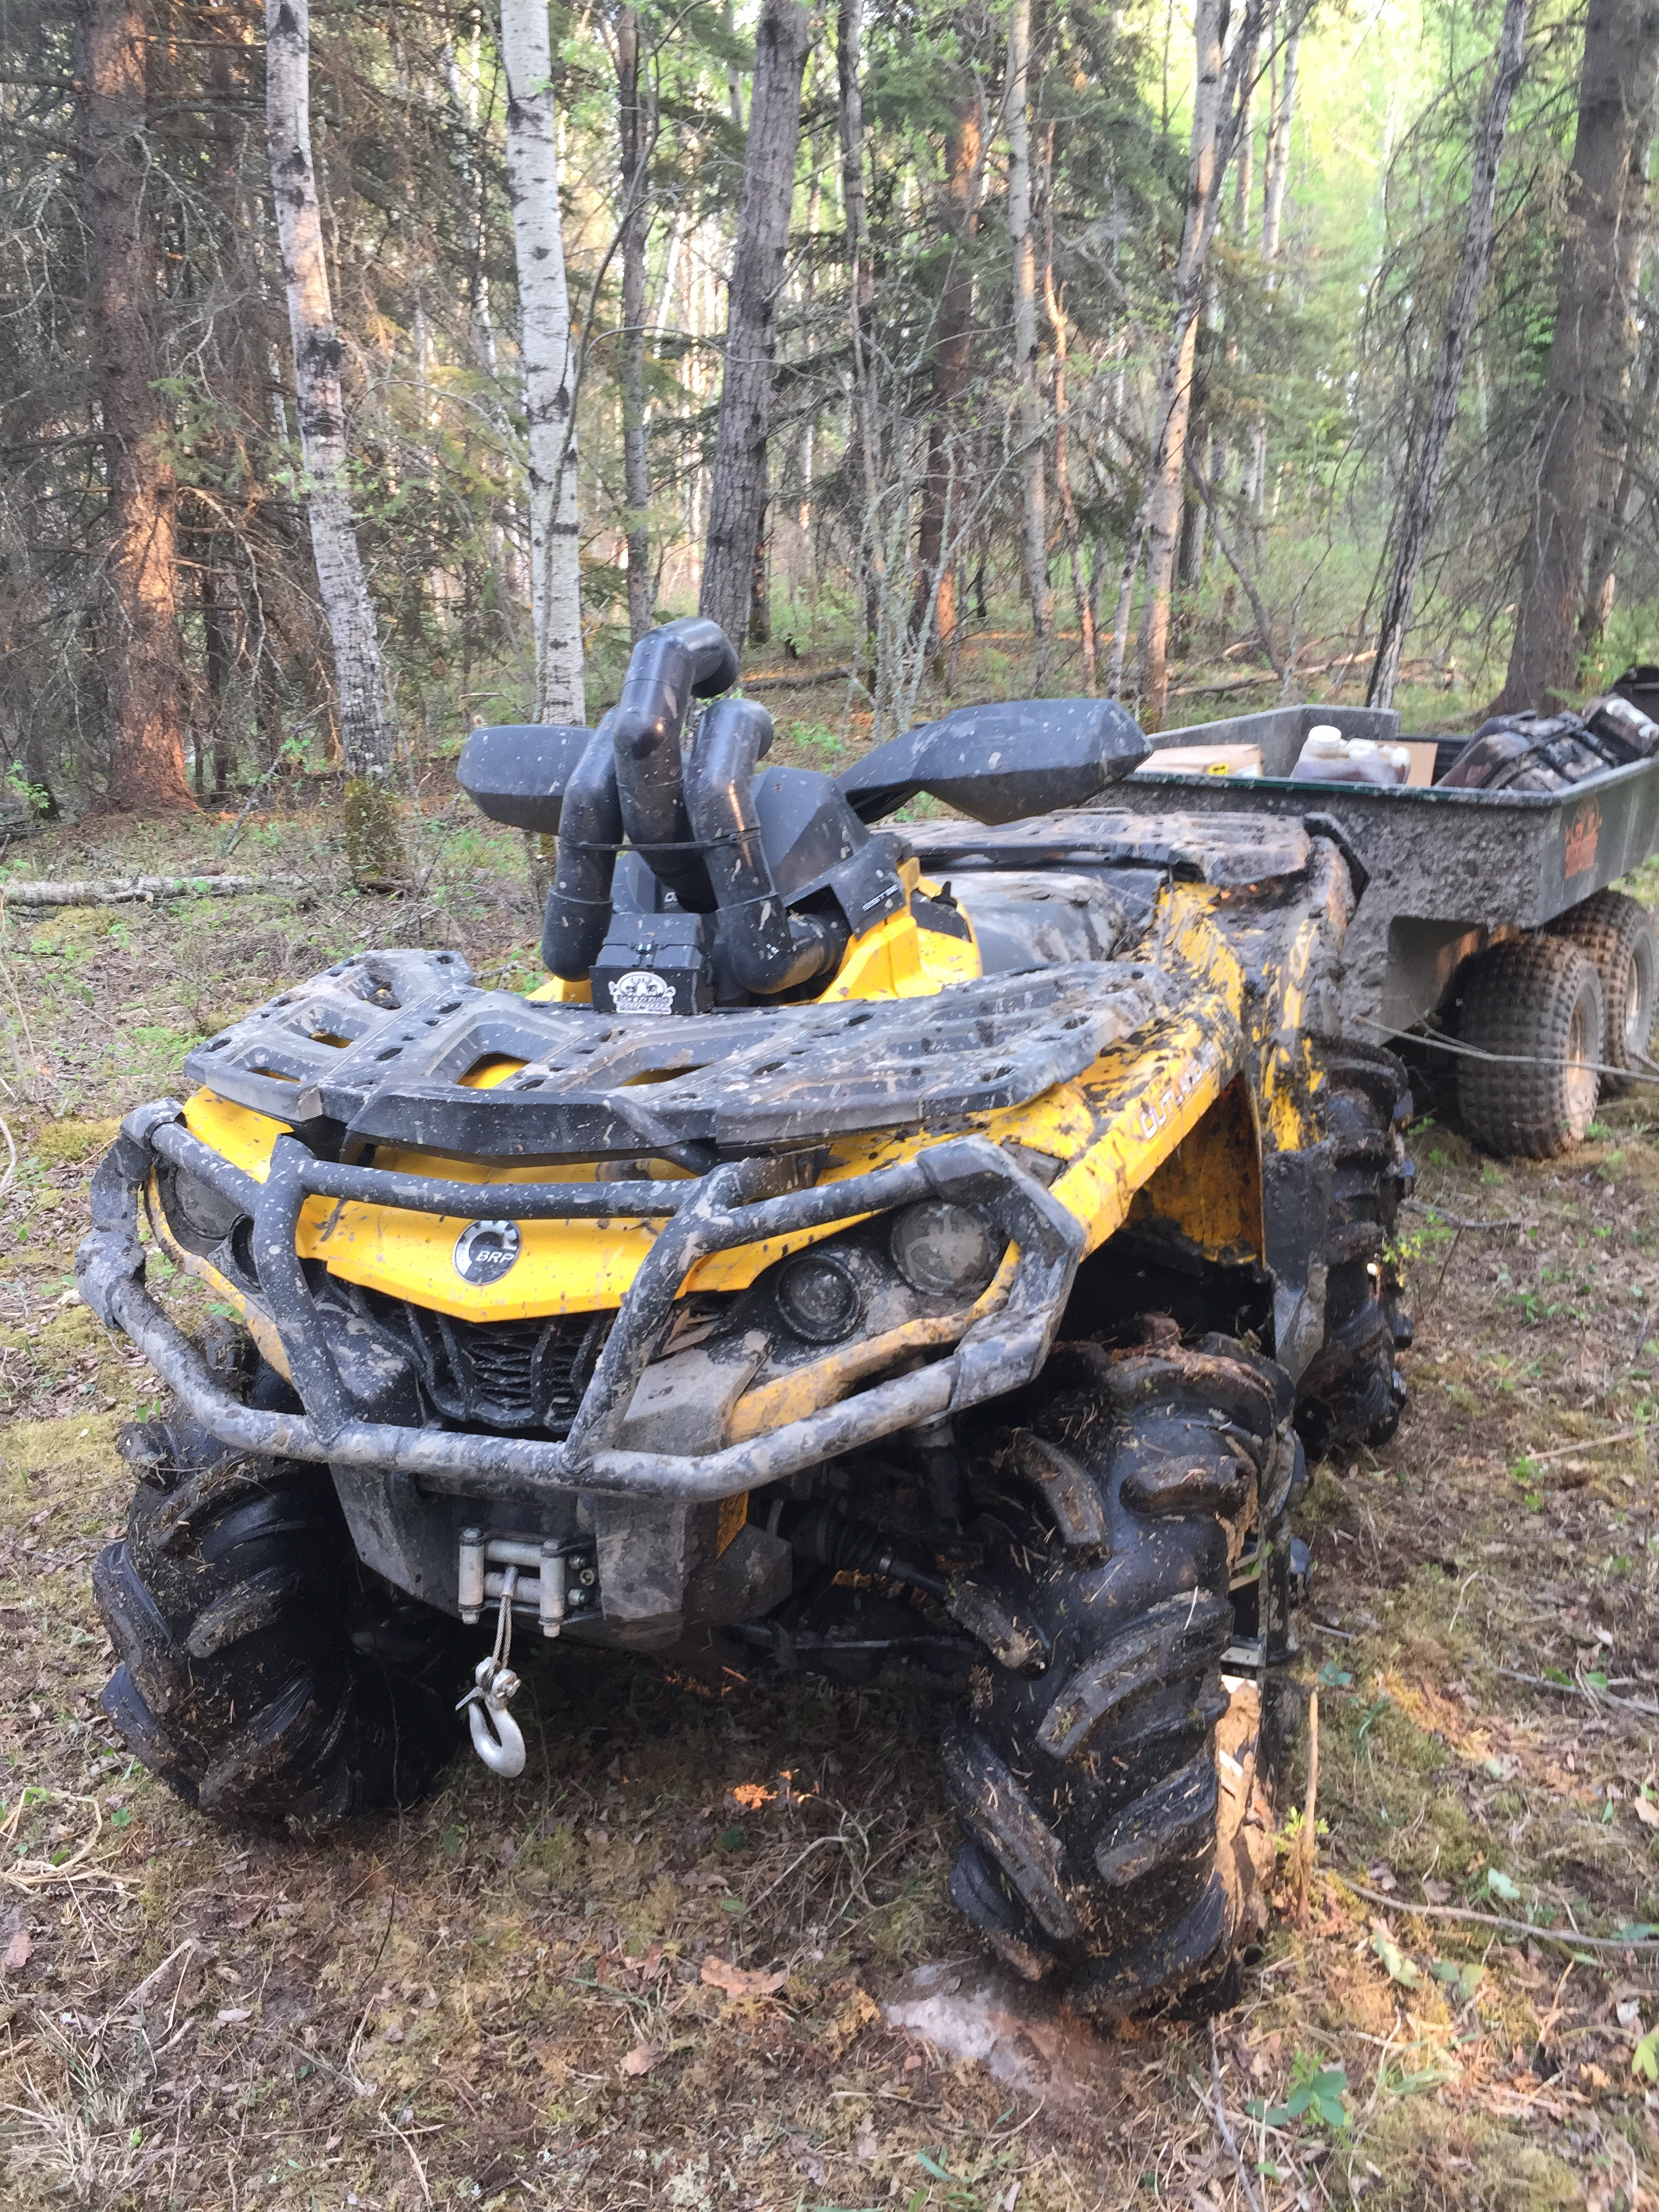 one muddy quad and trailer